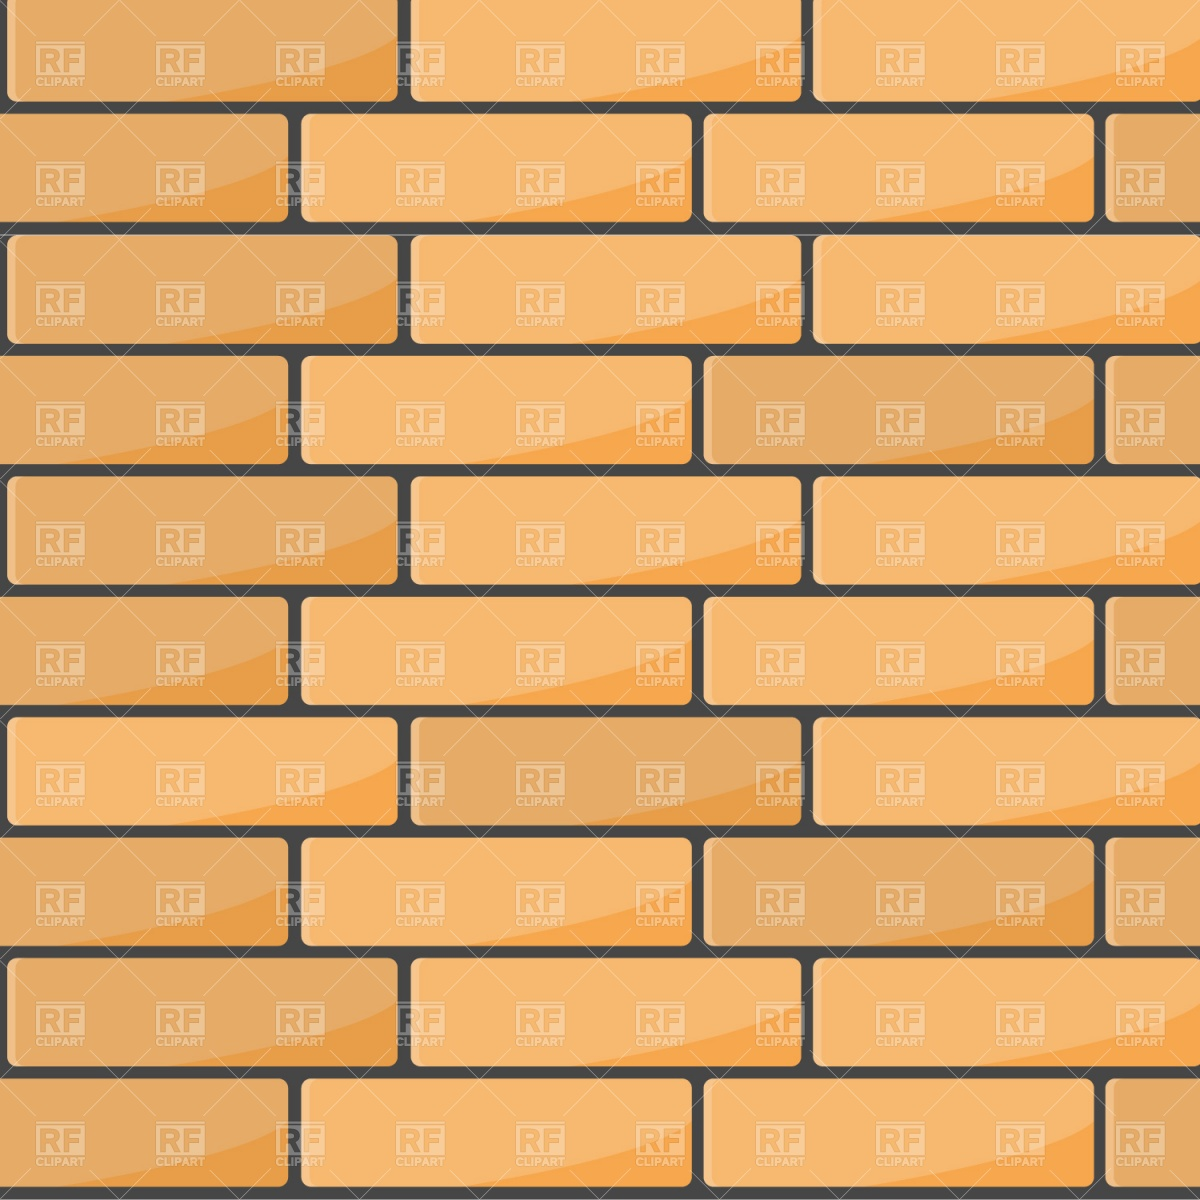 Walls house clipart.